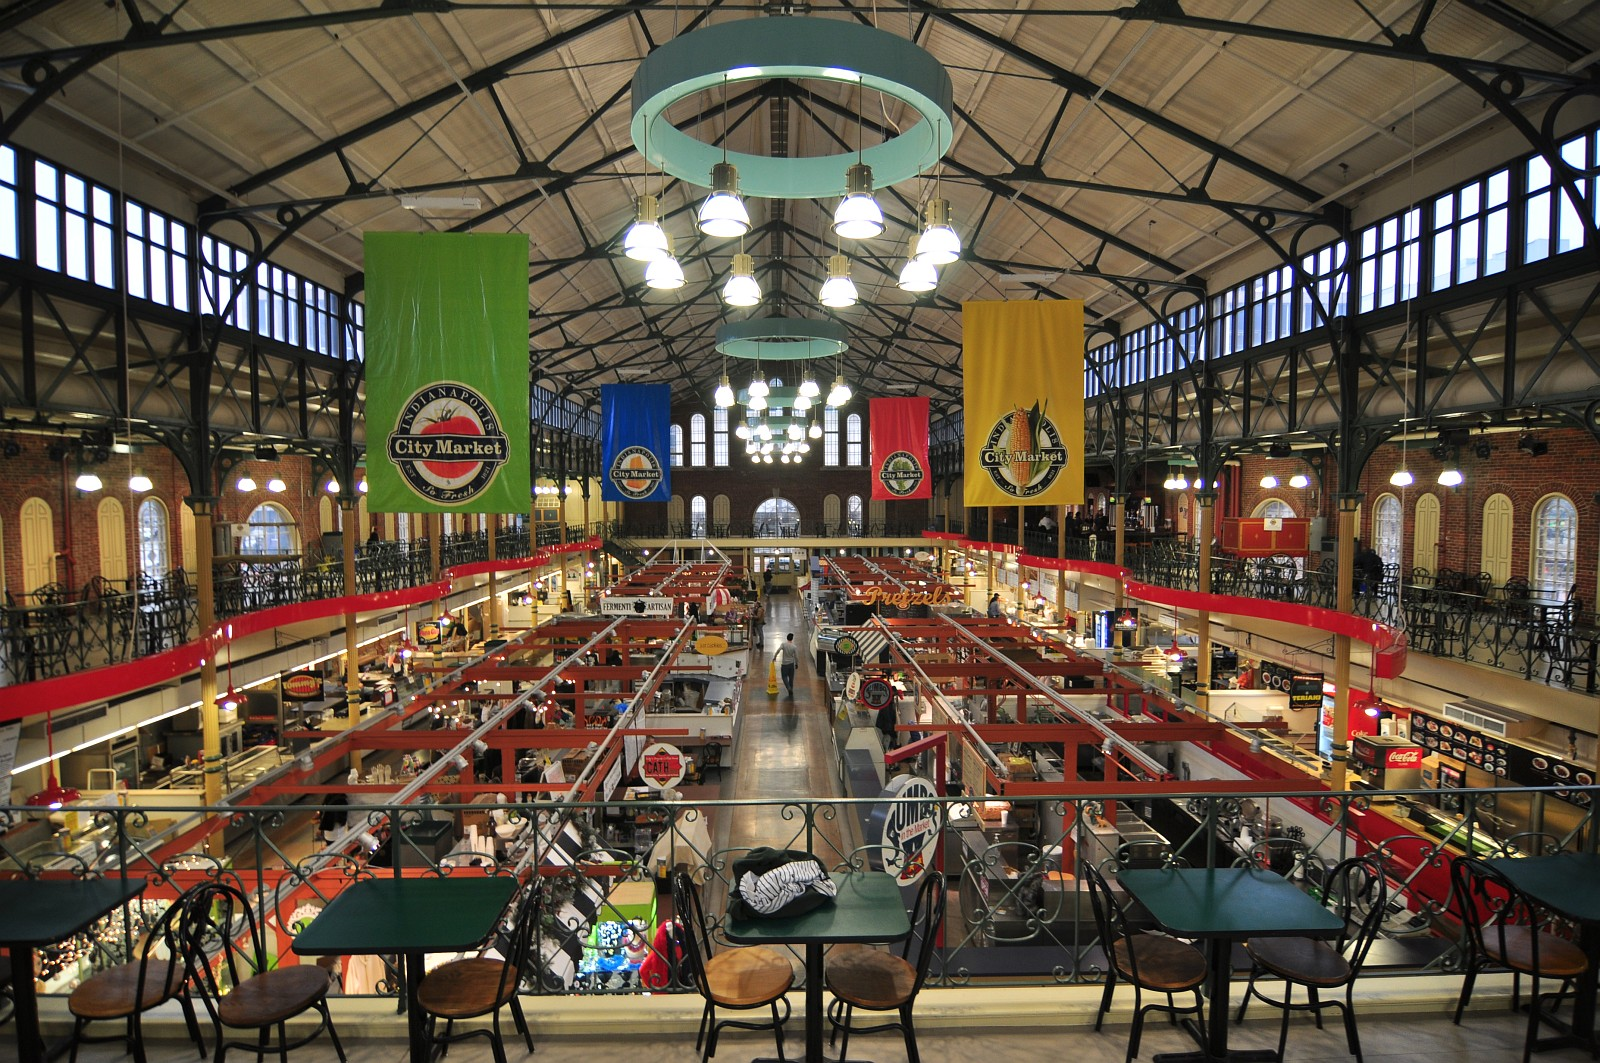 A panoramic view of the interior of City Market from the rear mezzanine which was added in the 1970s.